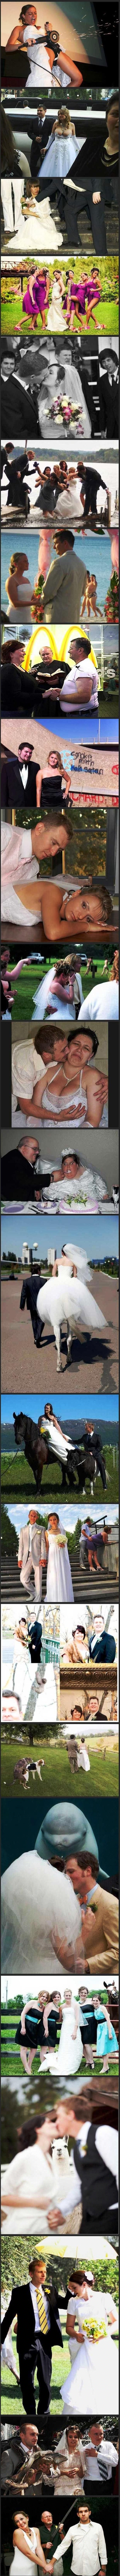 Funniest Wedding Pictures Ever Compilation